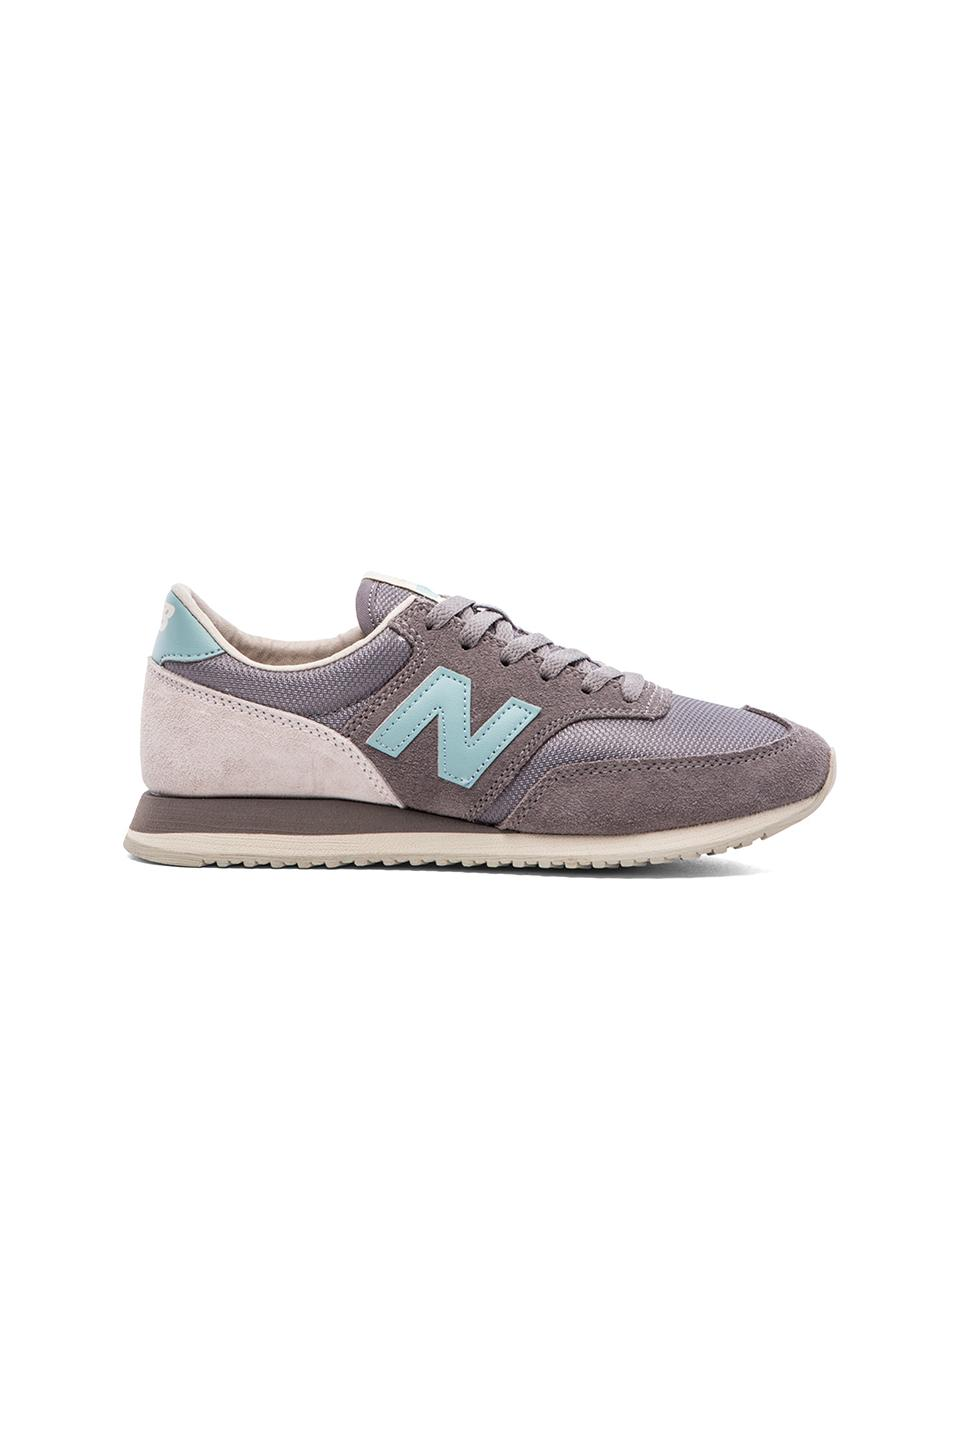 New Balance Classics '70s Running Collection Sneaker in Flint Grey